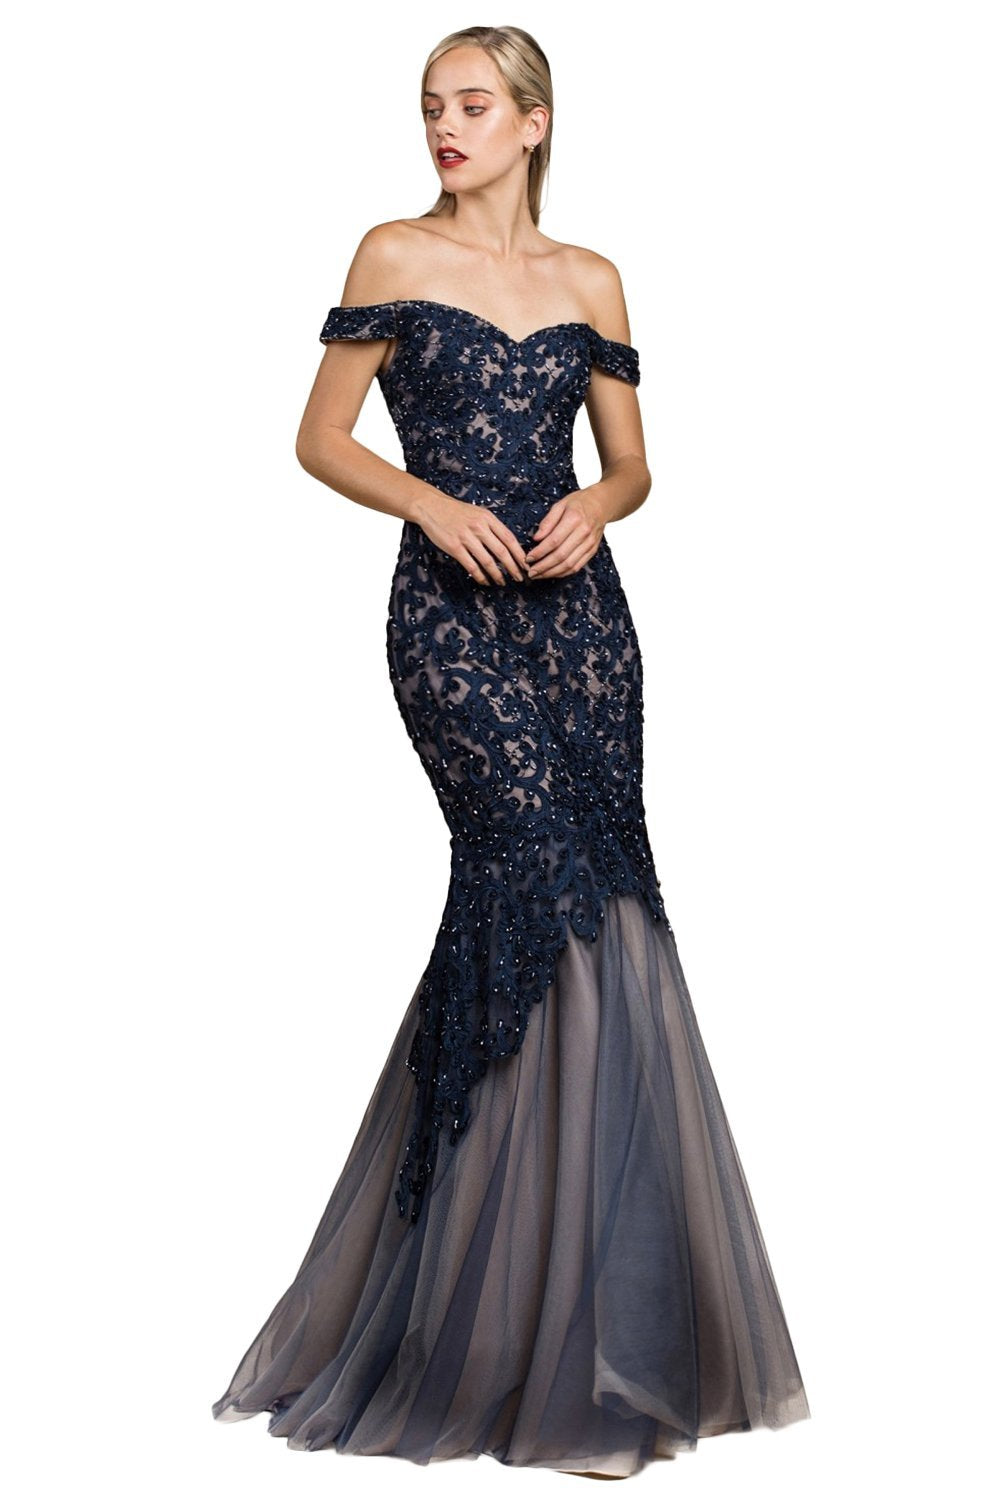 Cinderella Divine - A0401 Off Shoulder Lace Overlay Tulle Mermaid Gown In Navy